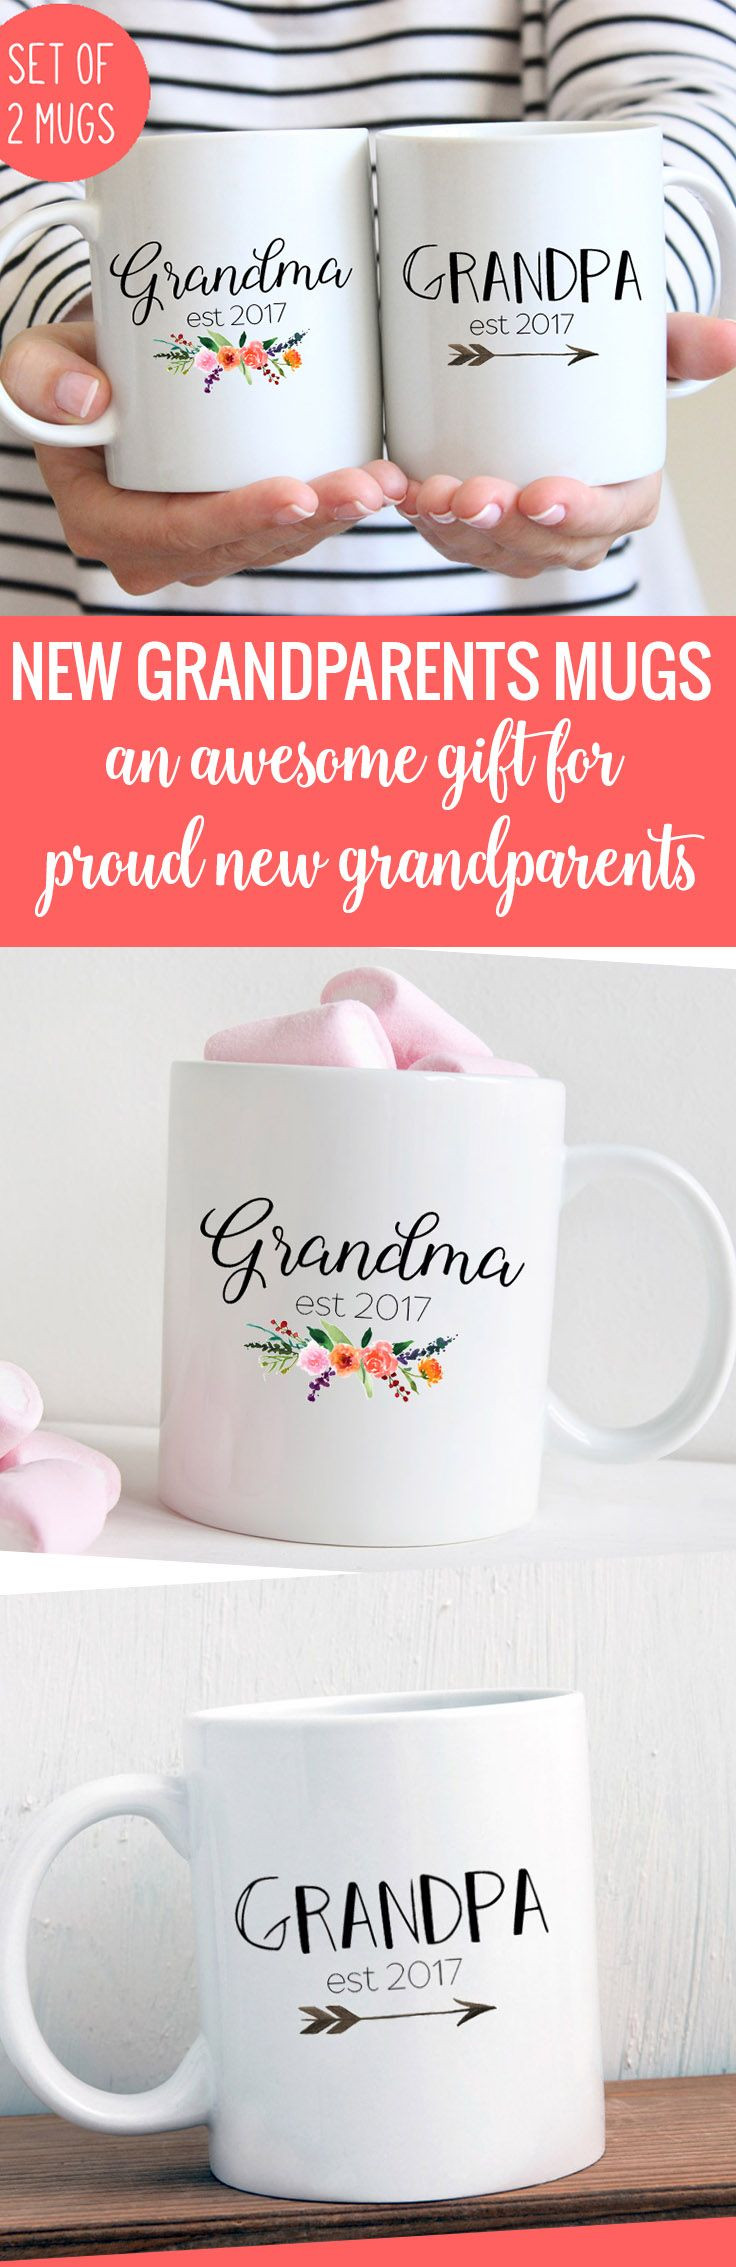 Best ideas about Grandparent Gift Ideas For New Baby . Save or Pin 25 best ideas about New grandparent ts on Pinterest Now.